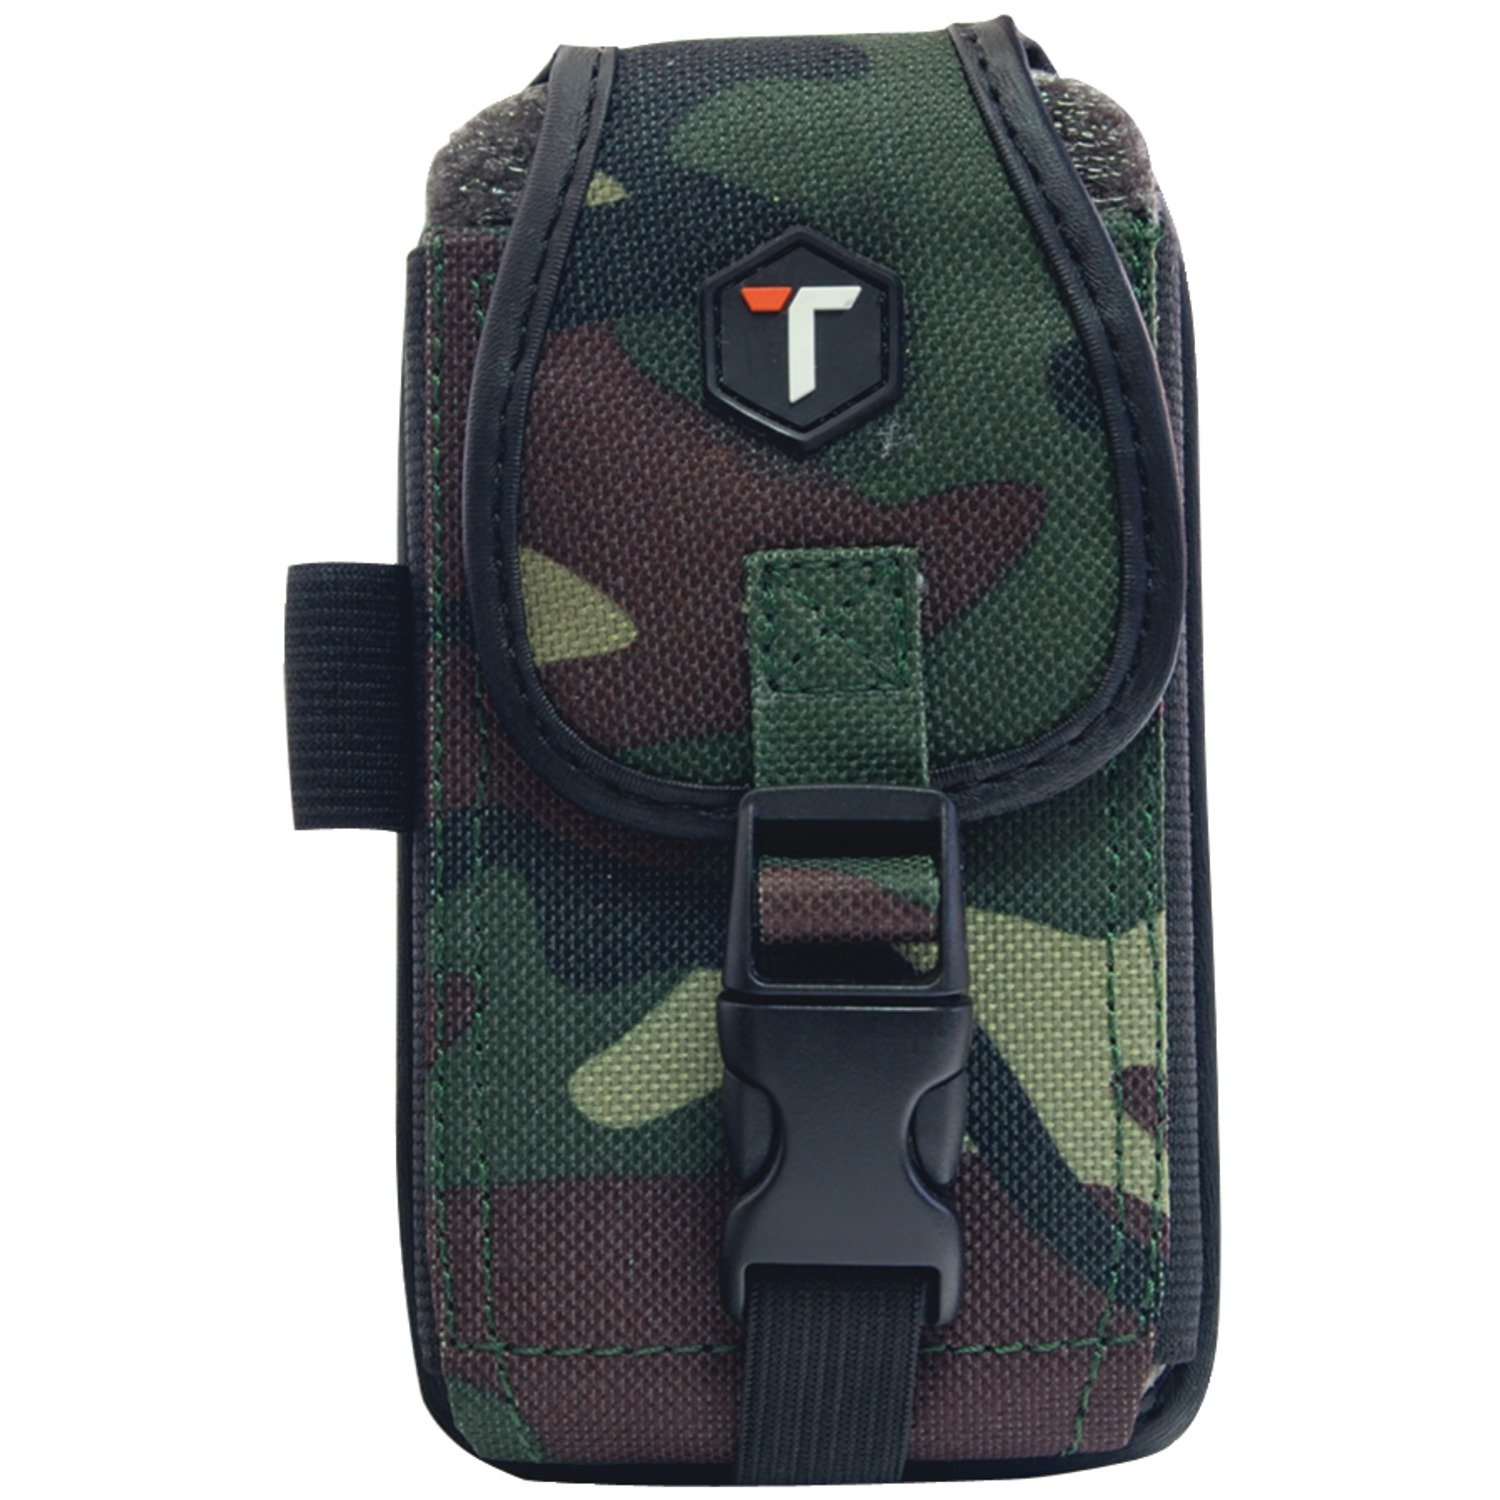 TOUGH TESTED TT-RUGGED-LC Rugged Pouch - 1 Pack - Retail Packaging - Camouflage